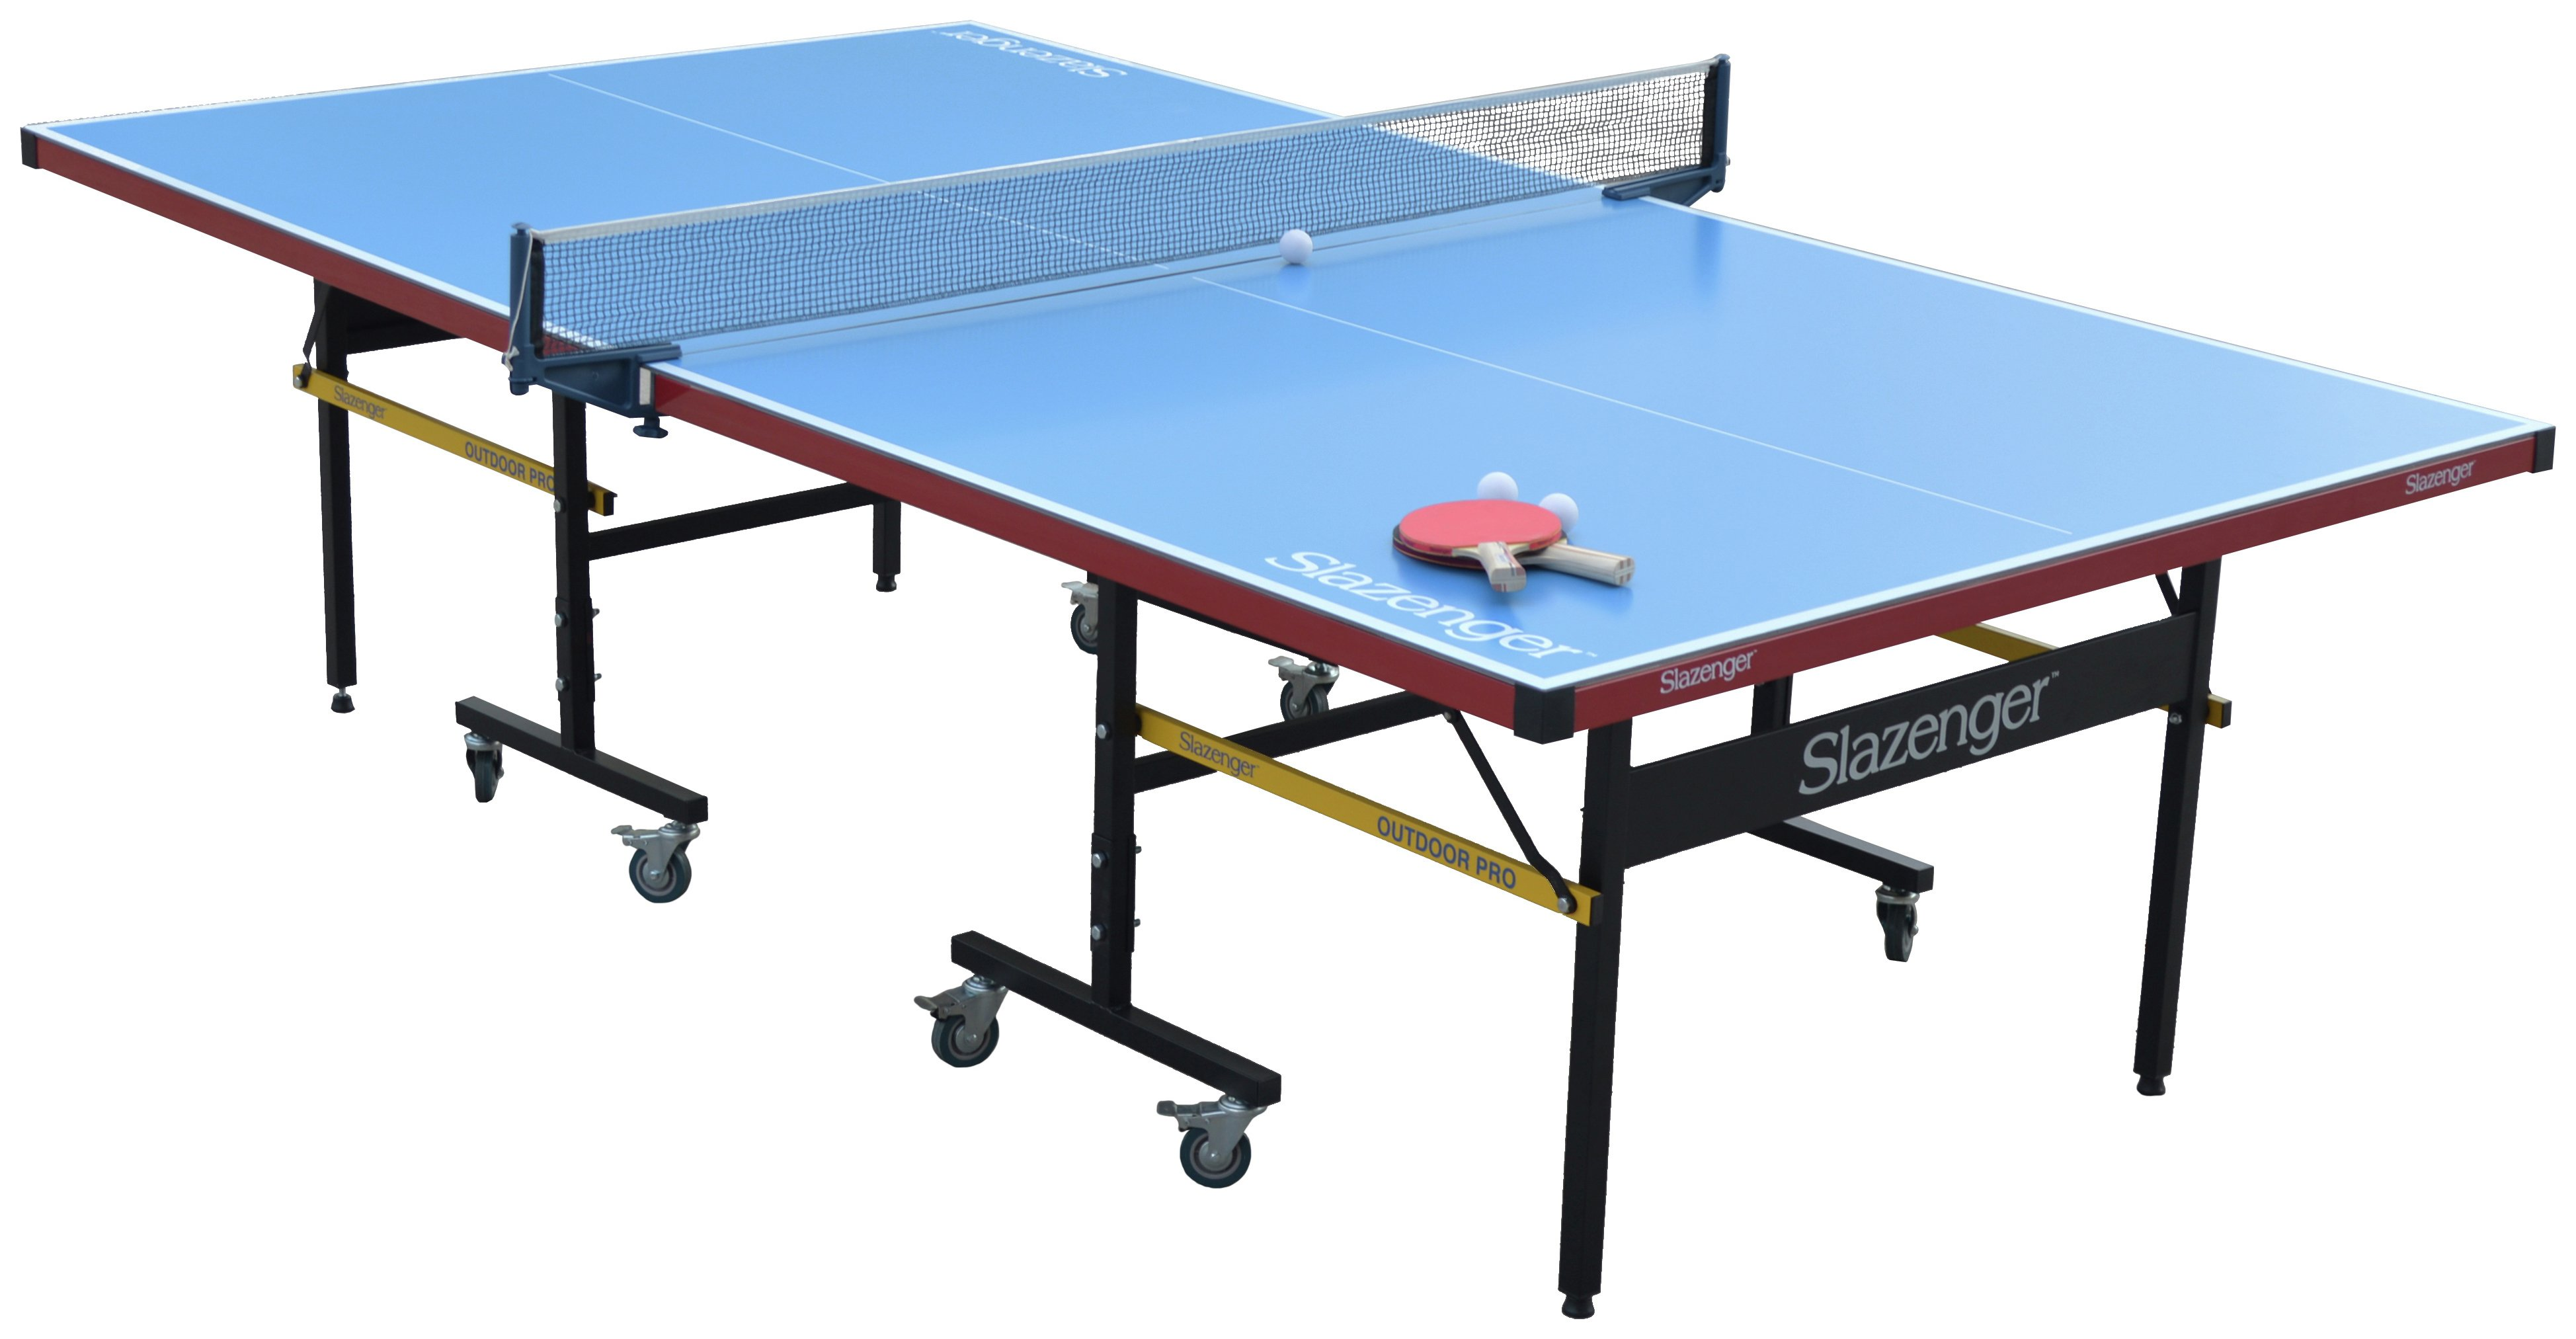 Slazenger Full Size Outdoor Table Tennis Table